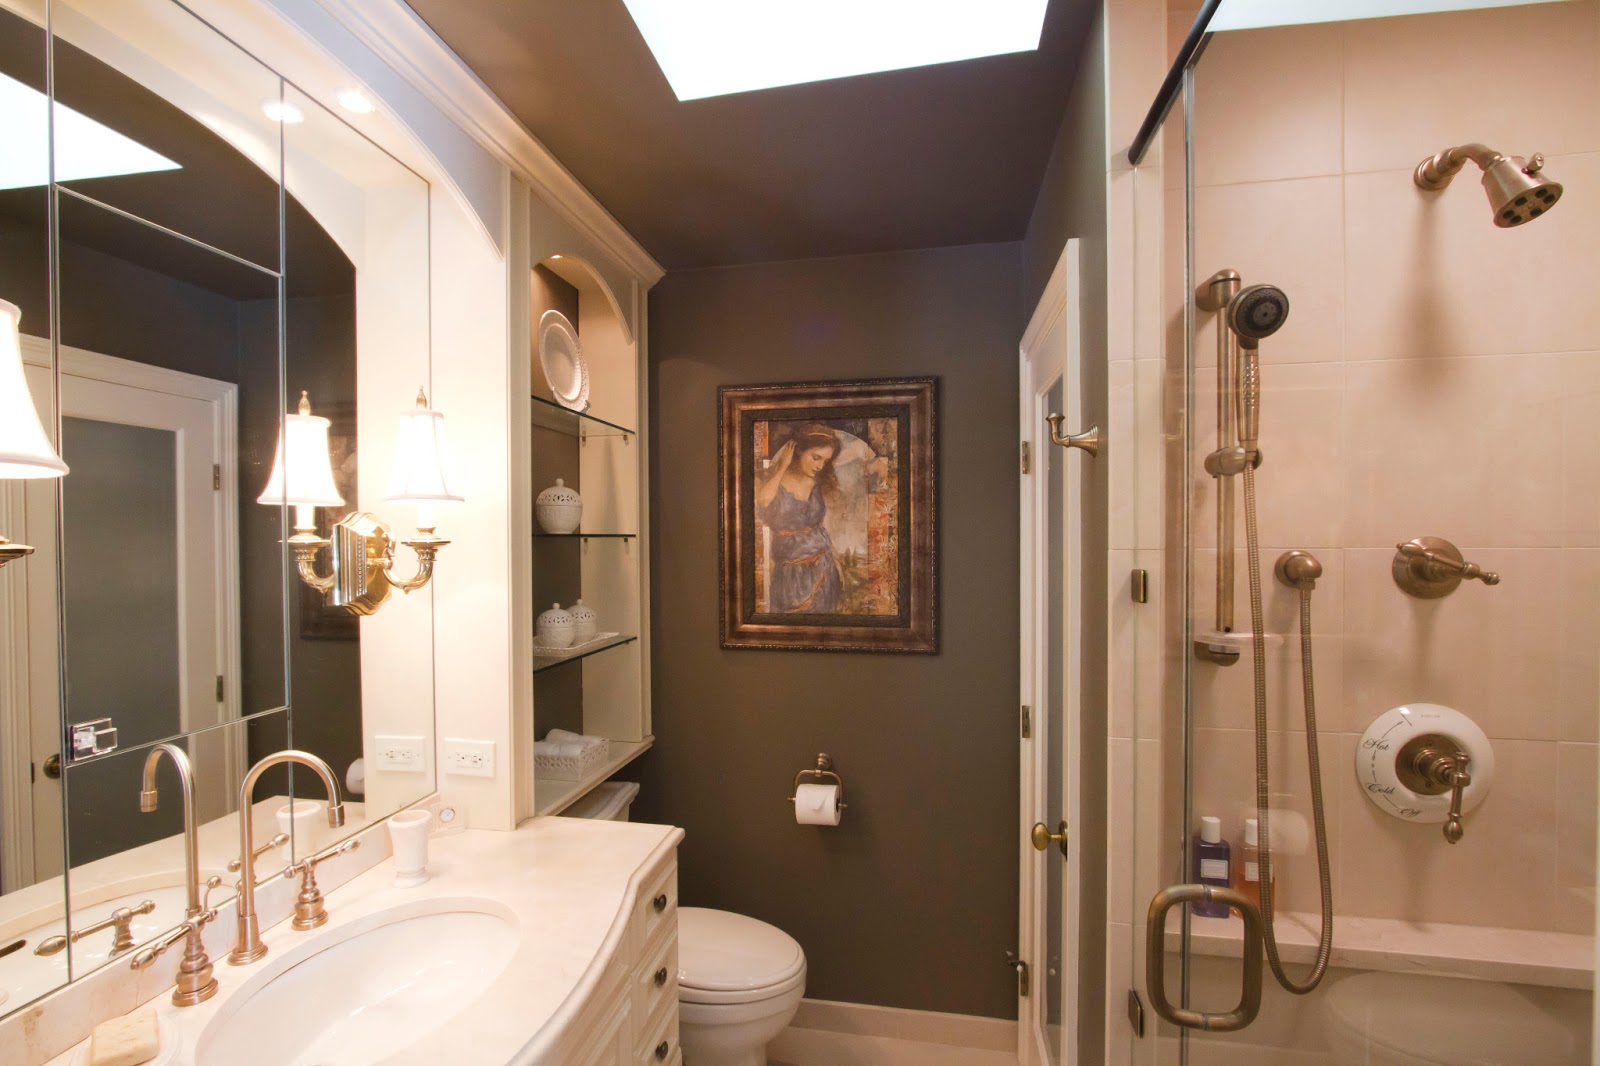 Small Bathroom Design Photo Gallery up with stunning master bathroom designs interior design